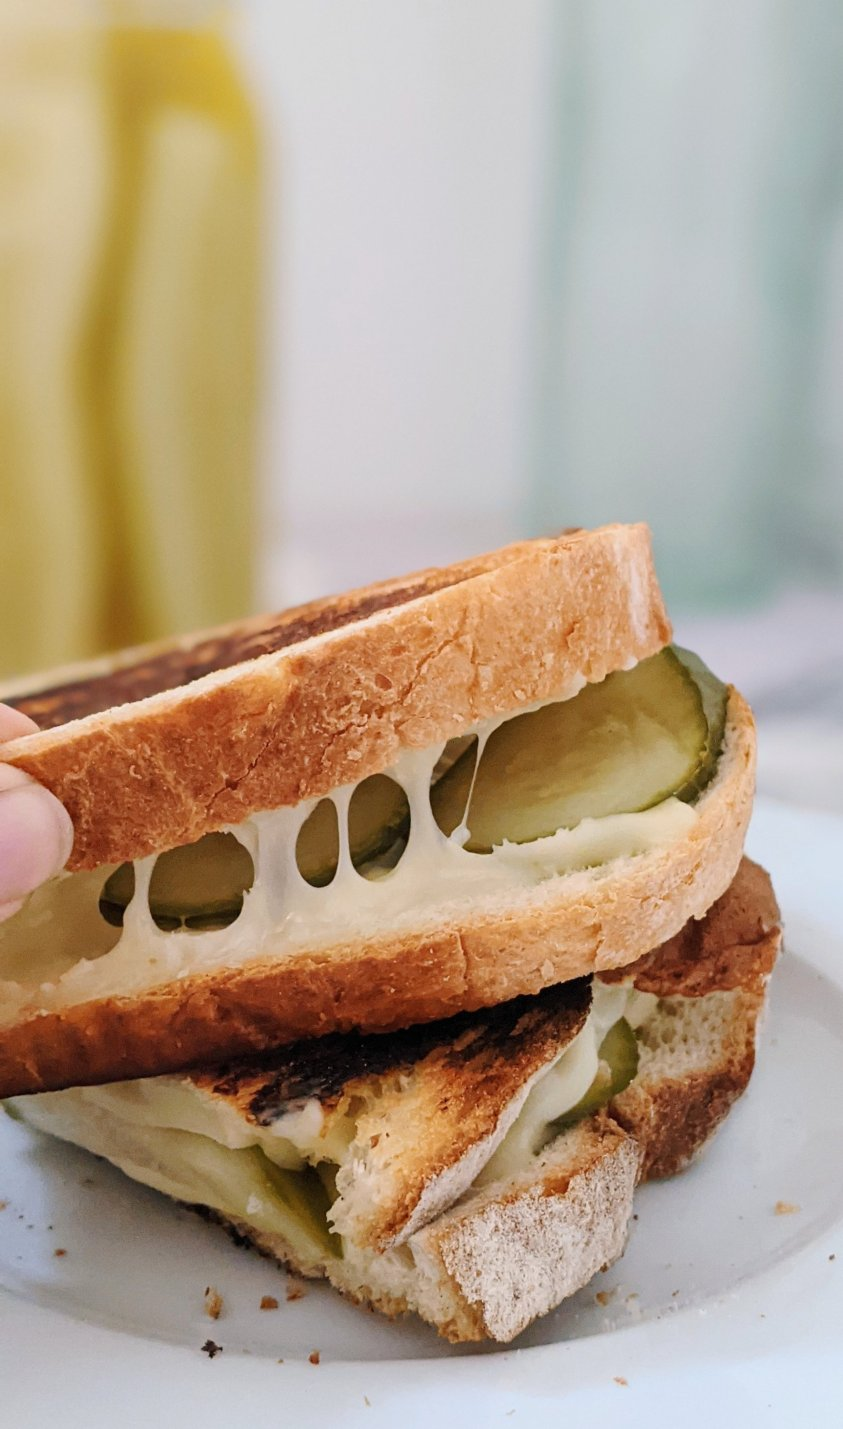 dill pickle grilled cheese recipe vegetarian gluten free ad keto options recipe with pickles for plant based diet low acrb grilled cheese with pickles recipe